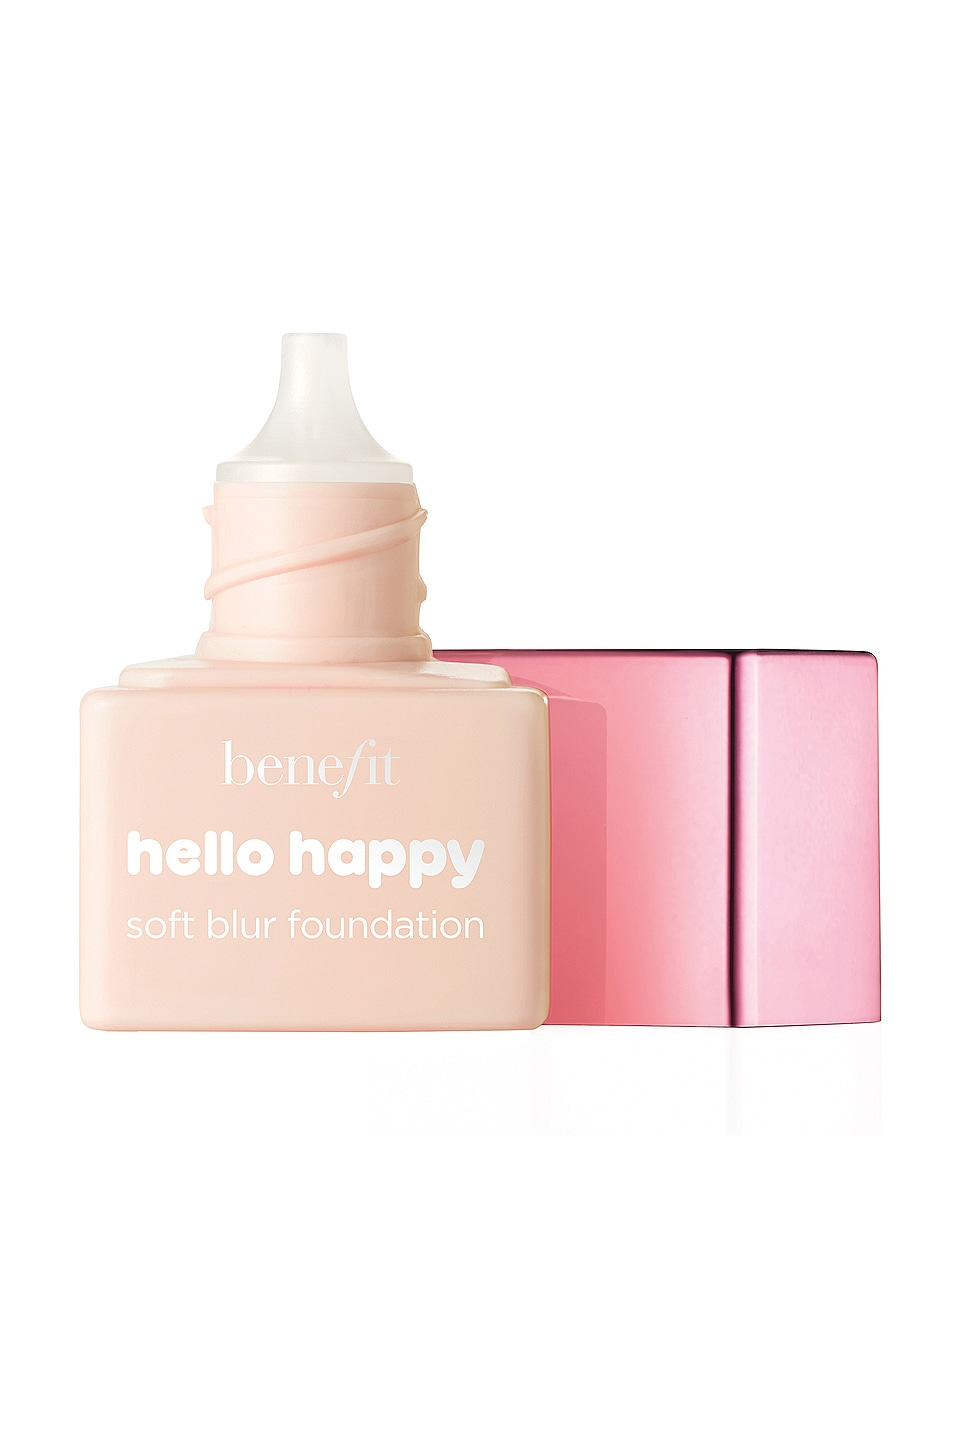 Benefit Cosmetics Mini Hello Happy Soft Blur Foundation in 01